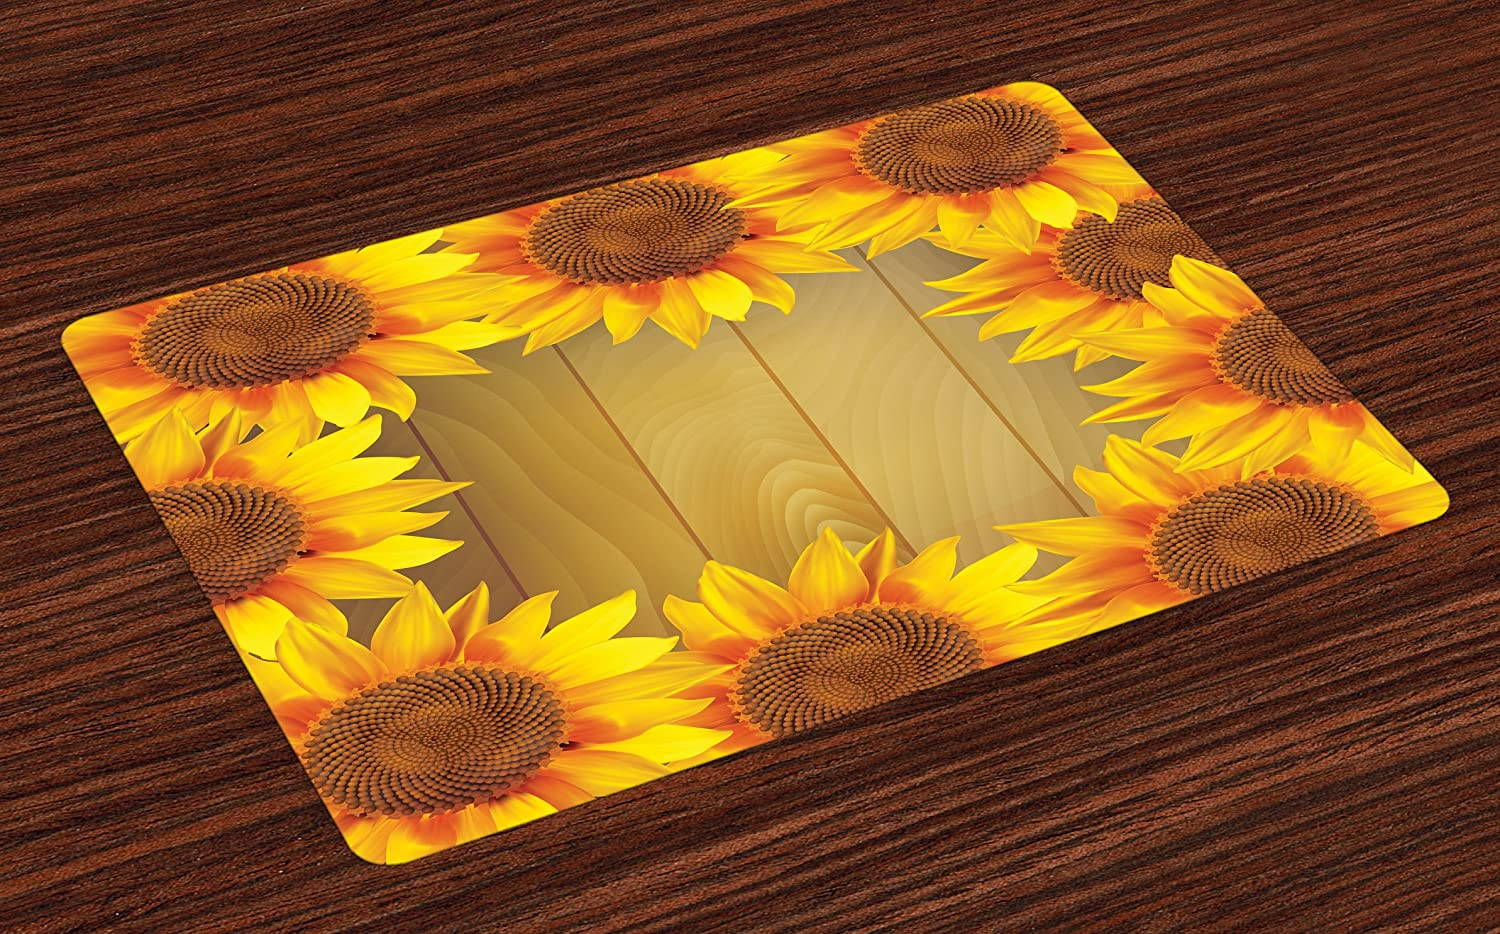 Ambesonne Sunflower Place Mats Set of 4, Sunflower Arranged in A Circle on Wood Print Flower Frame Illustration, Washable Fabric Placemats for Dining Room Kitchen Table Decor, Brown Orange